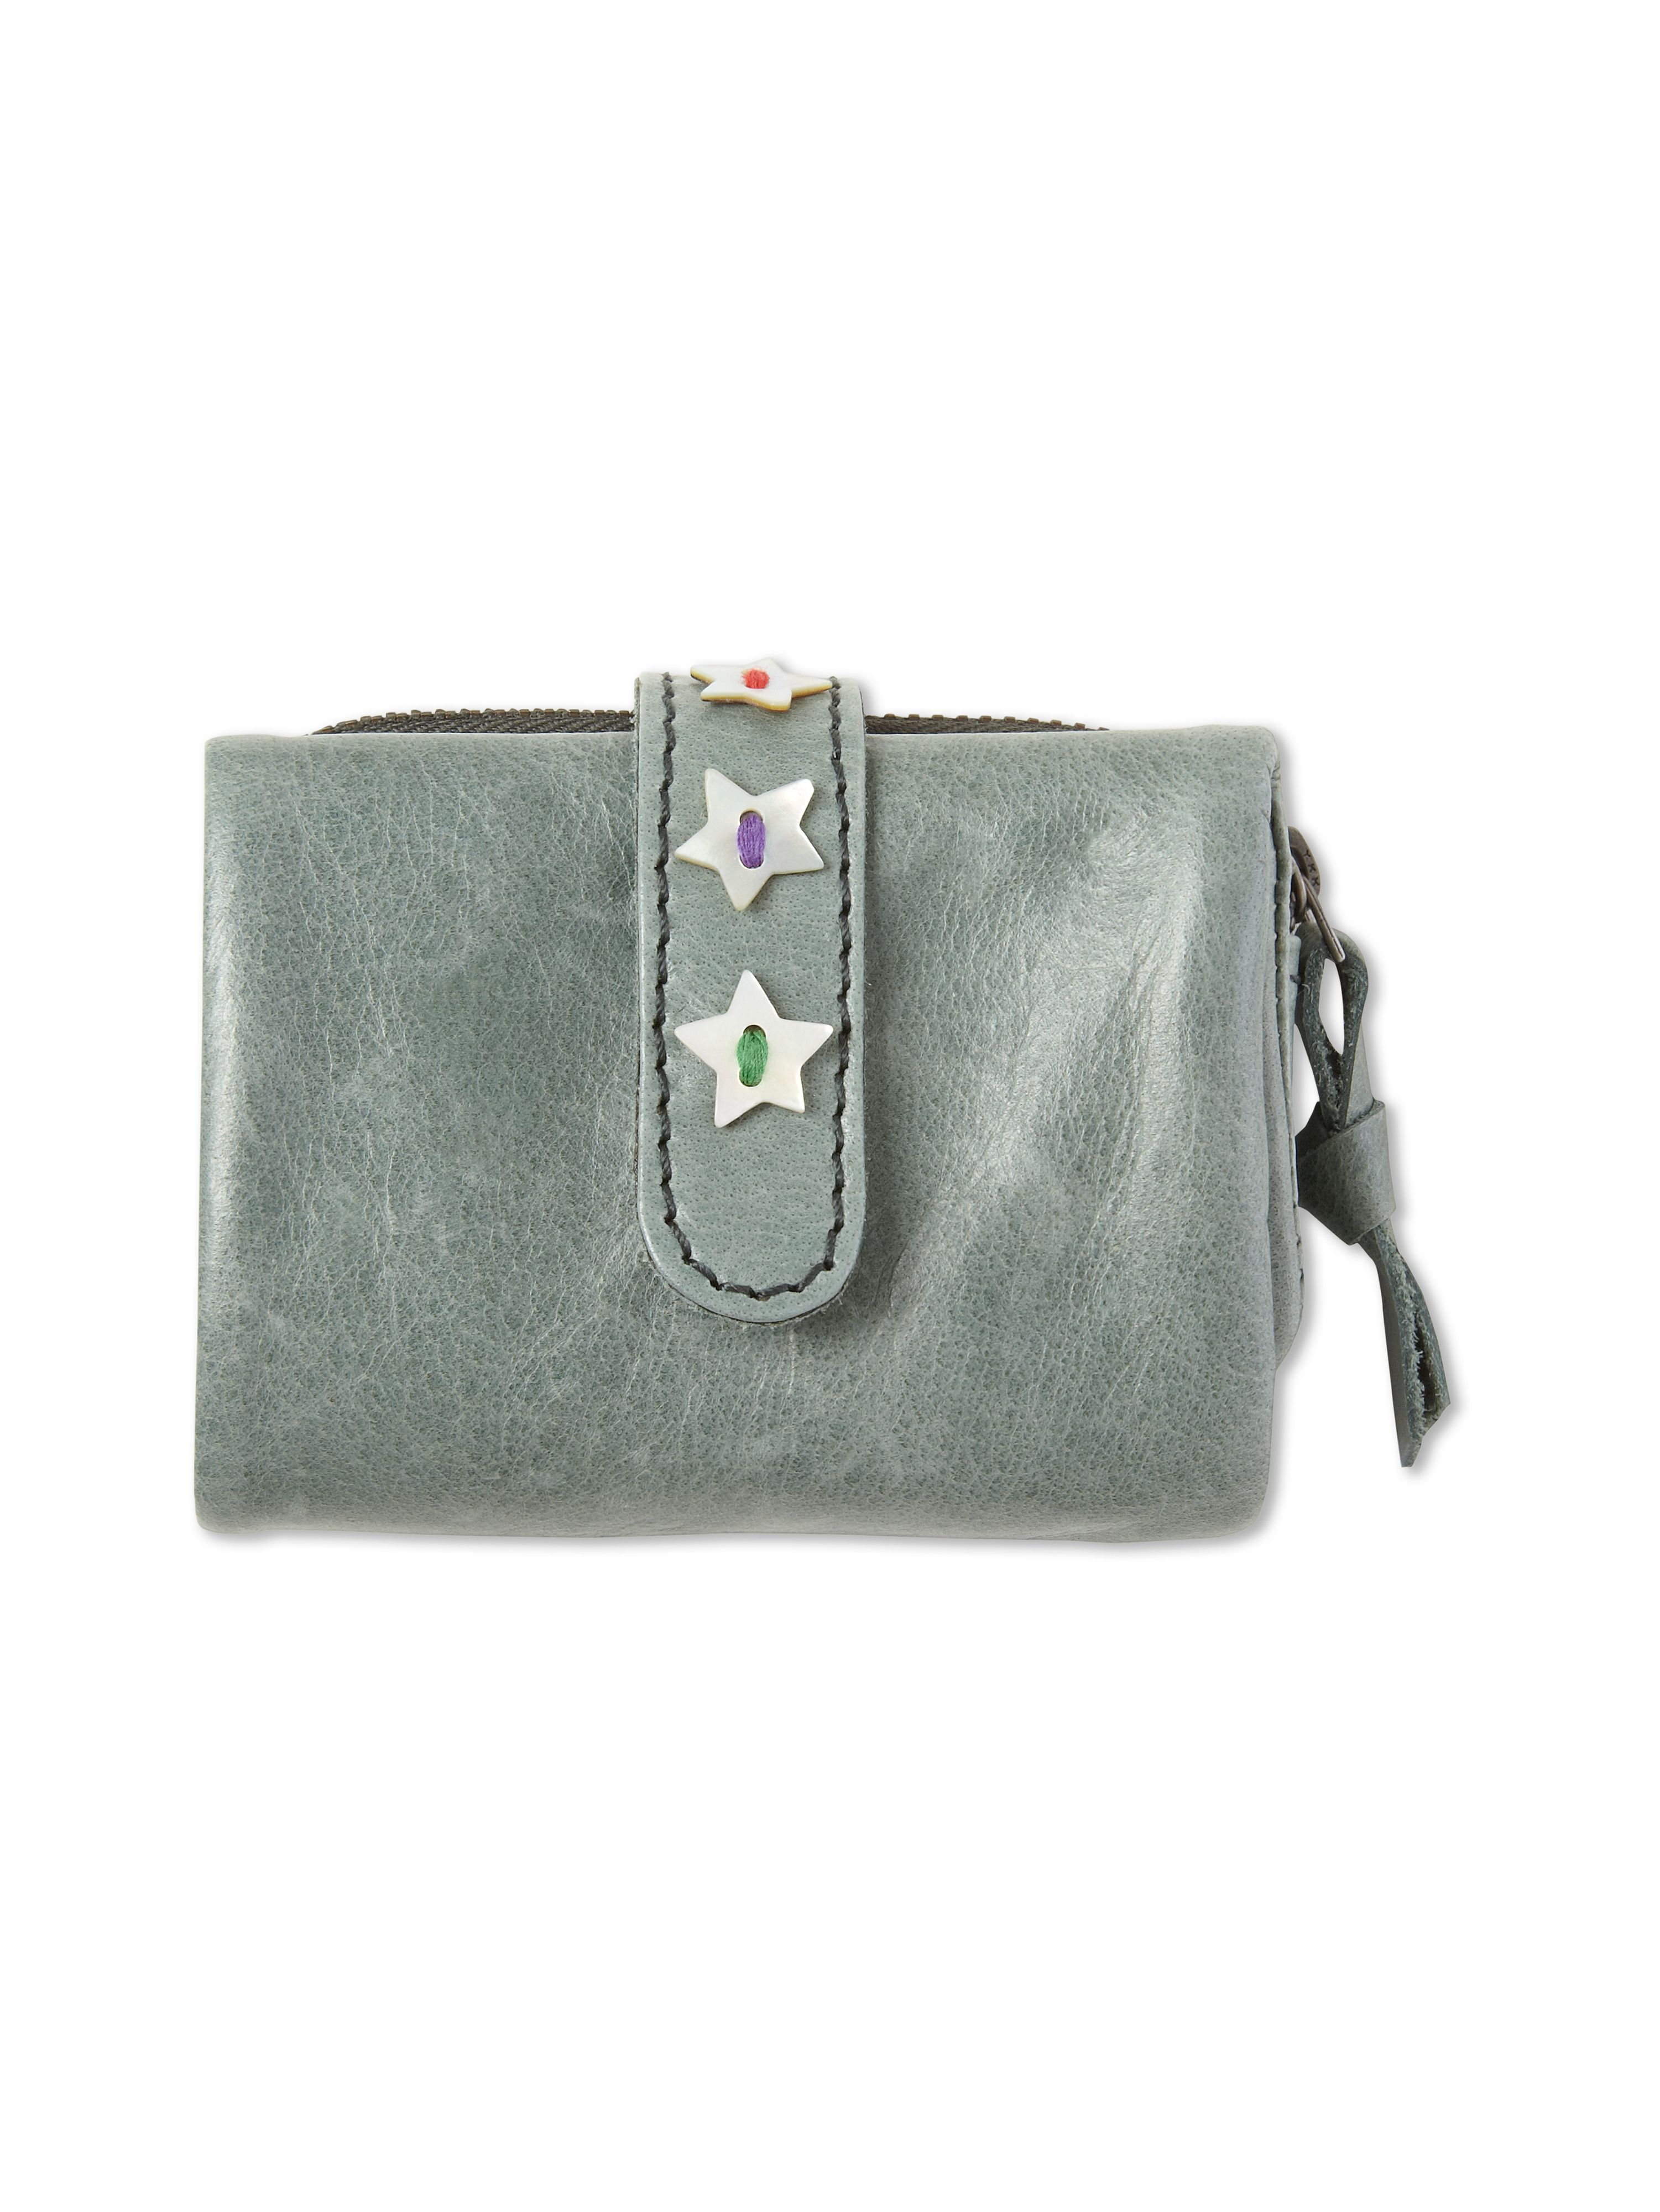 Star hero purse